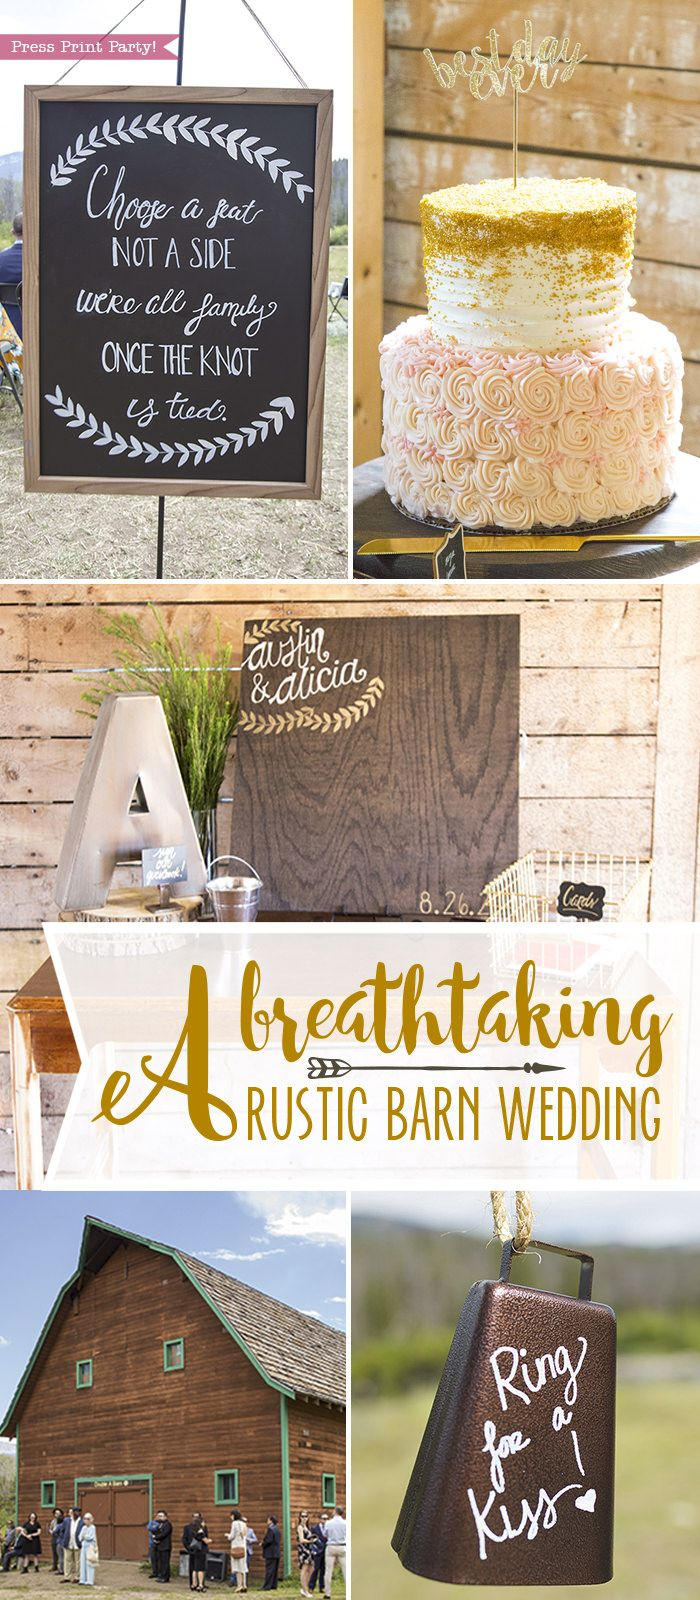 Diy decorations for wedding  A Breathtaking Rustic Barn Wedding on the cheap  Press Print